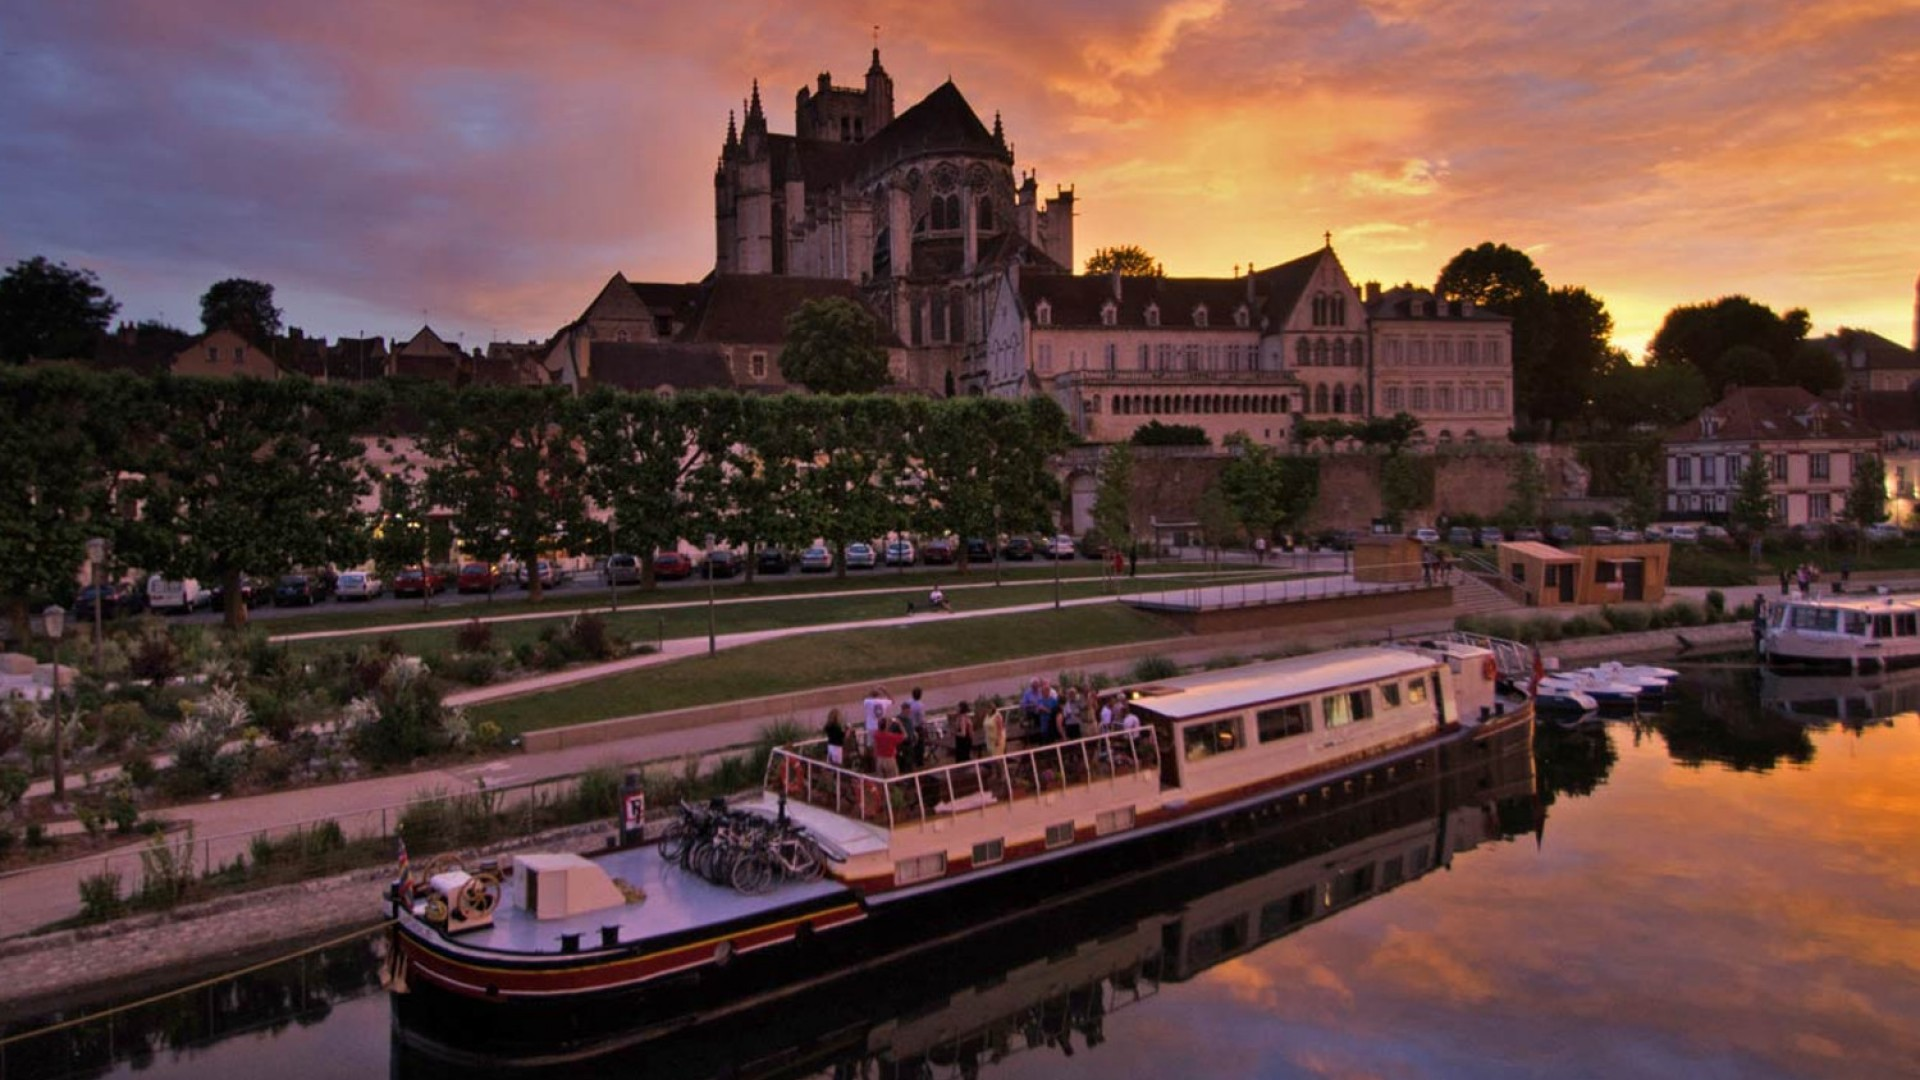 luxury barge in france at sunset